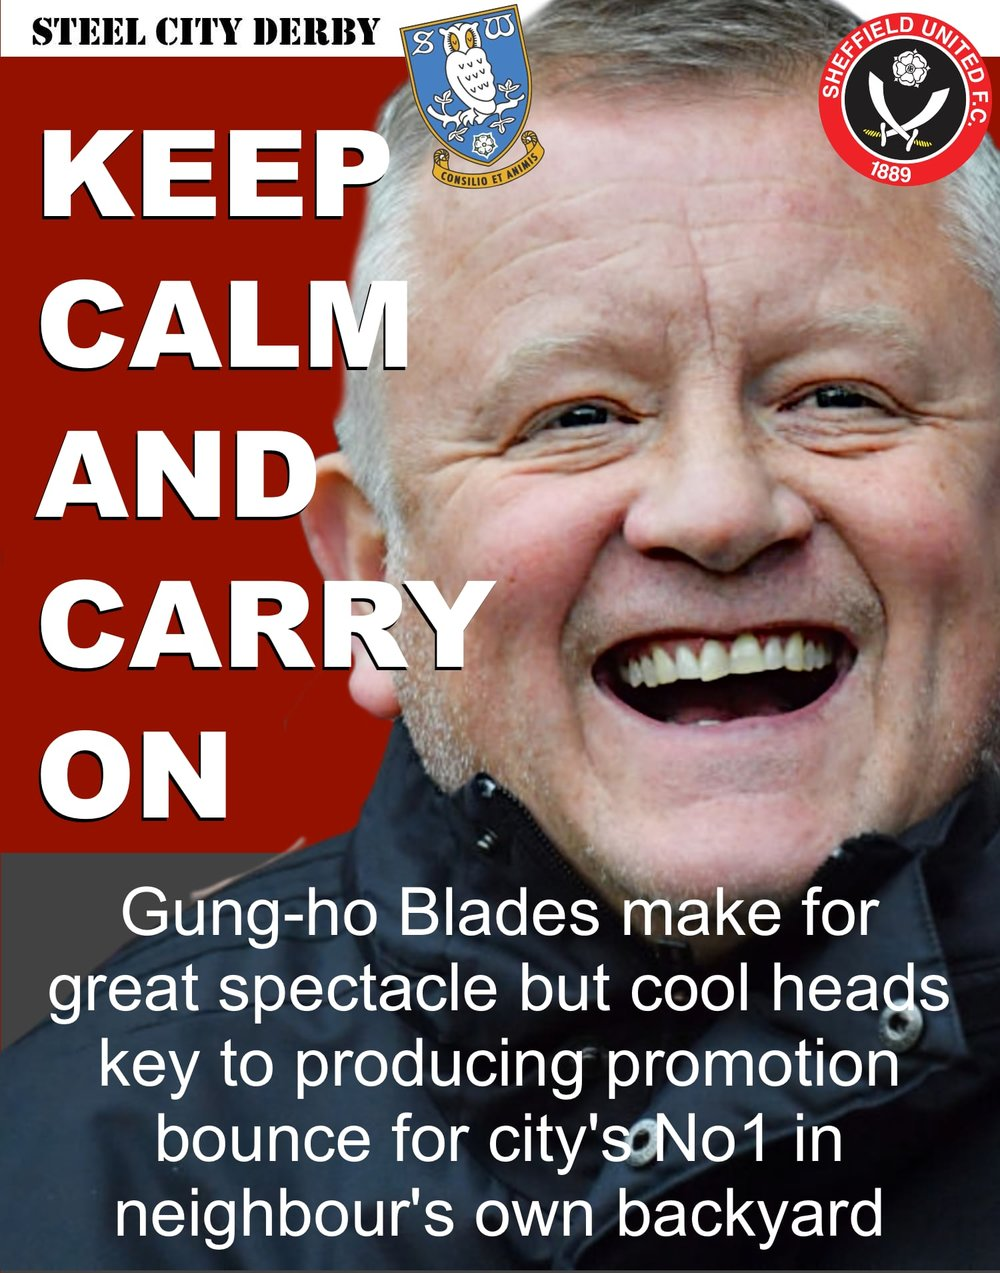 Steel City Derby: Sheffield United need to keep cool heads to press home superiority and keep automatic promotion bid on track